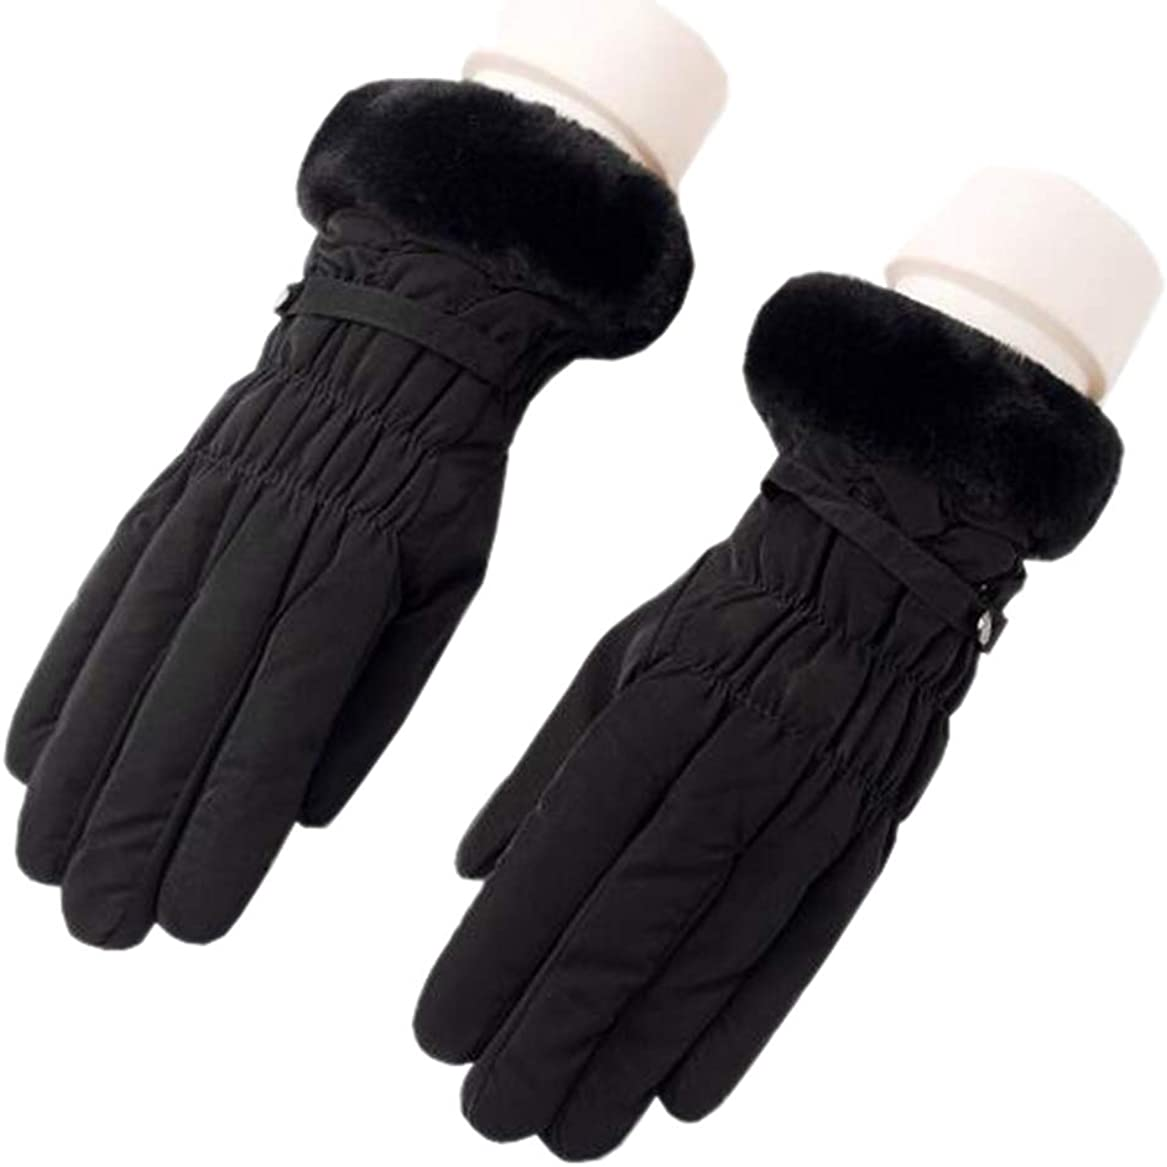 BIKMAN Women's Winter Gloves Cold Weather Fleece Lined Windproof Thermal Gloves Touchscreen